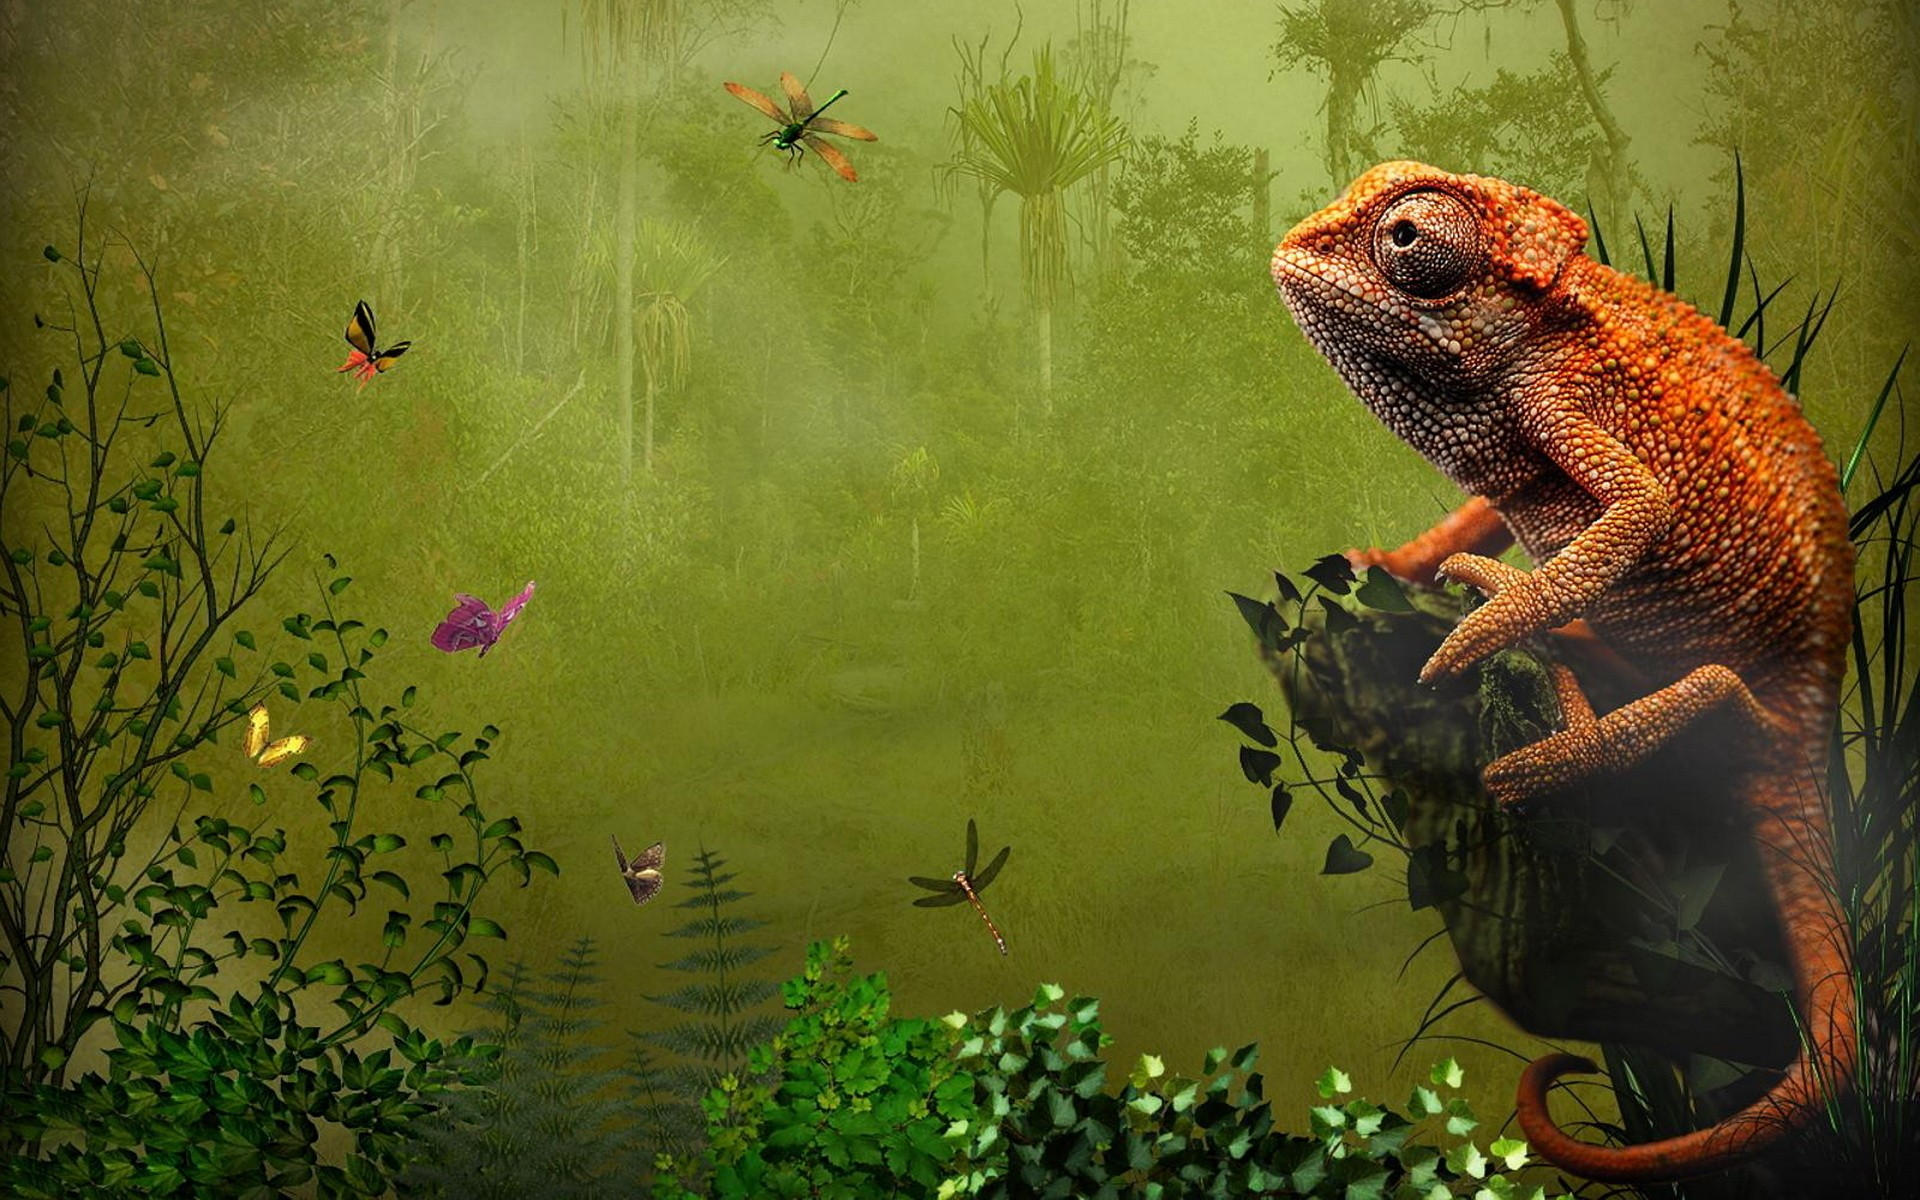 22 reptile hd wallpapers - photo #5